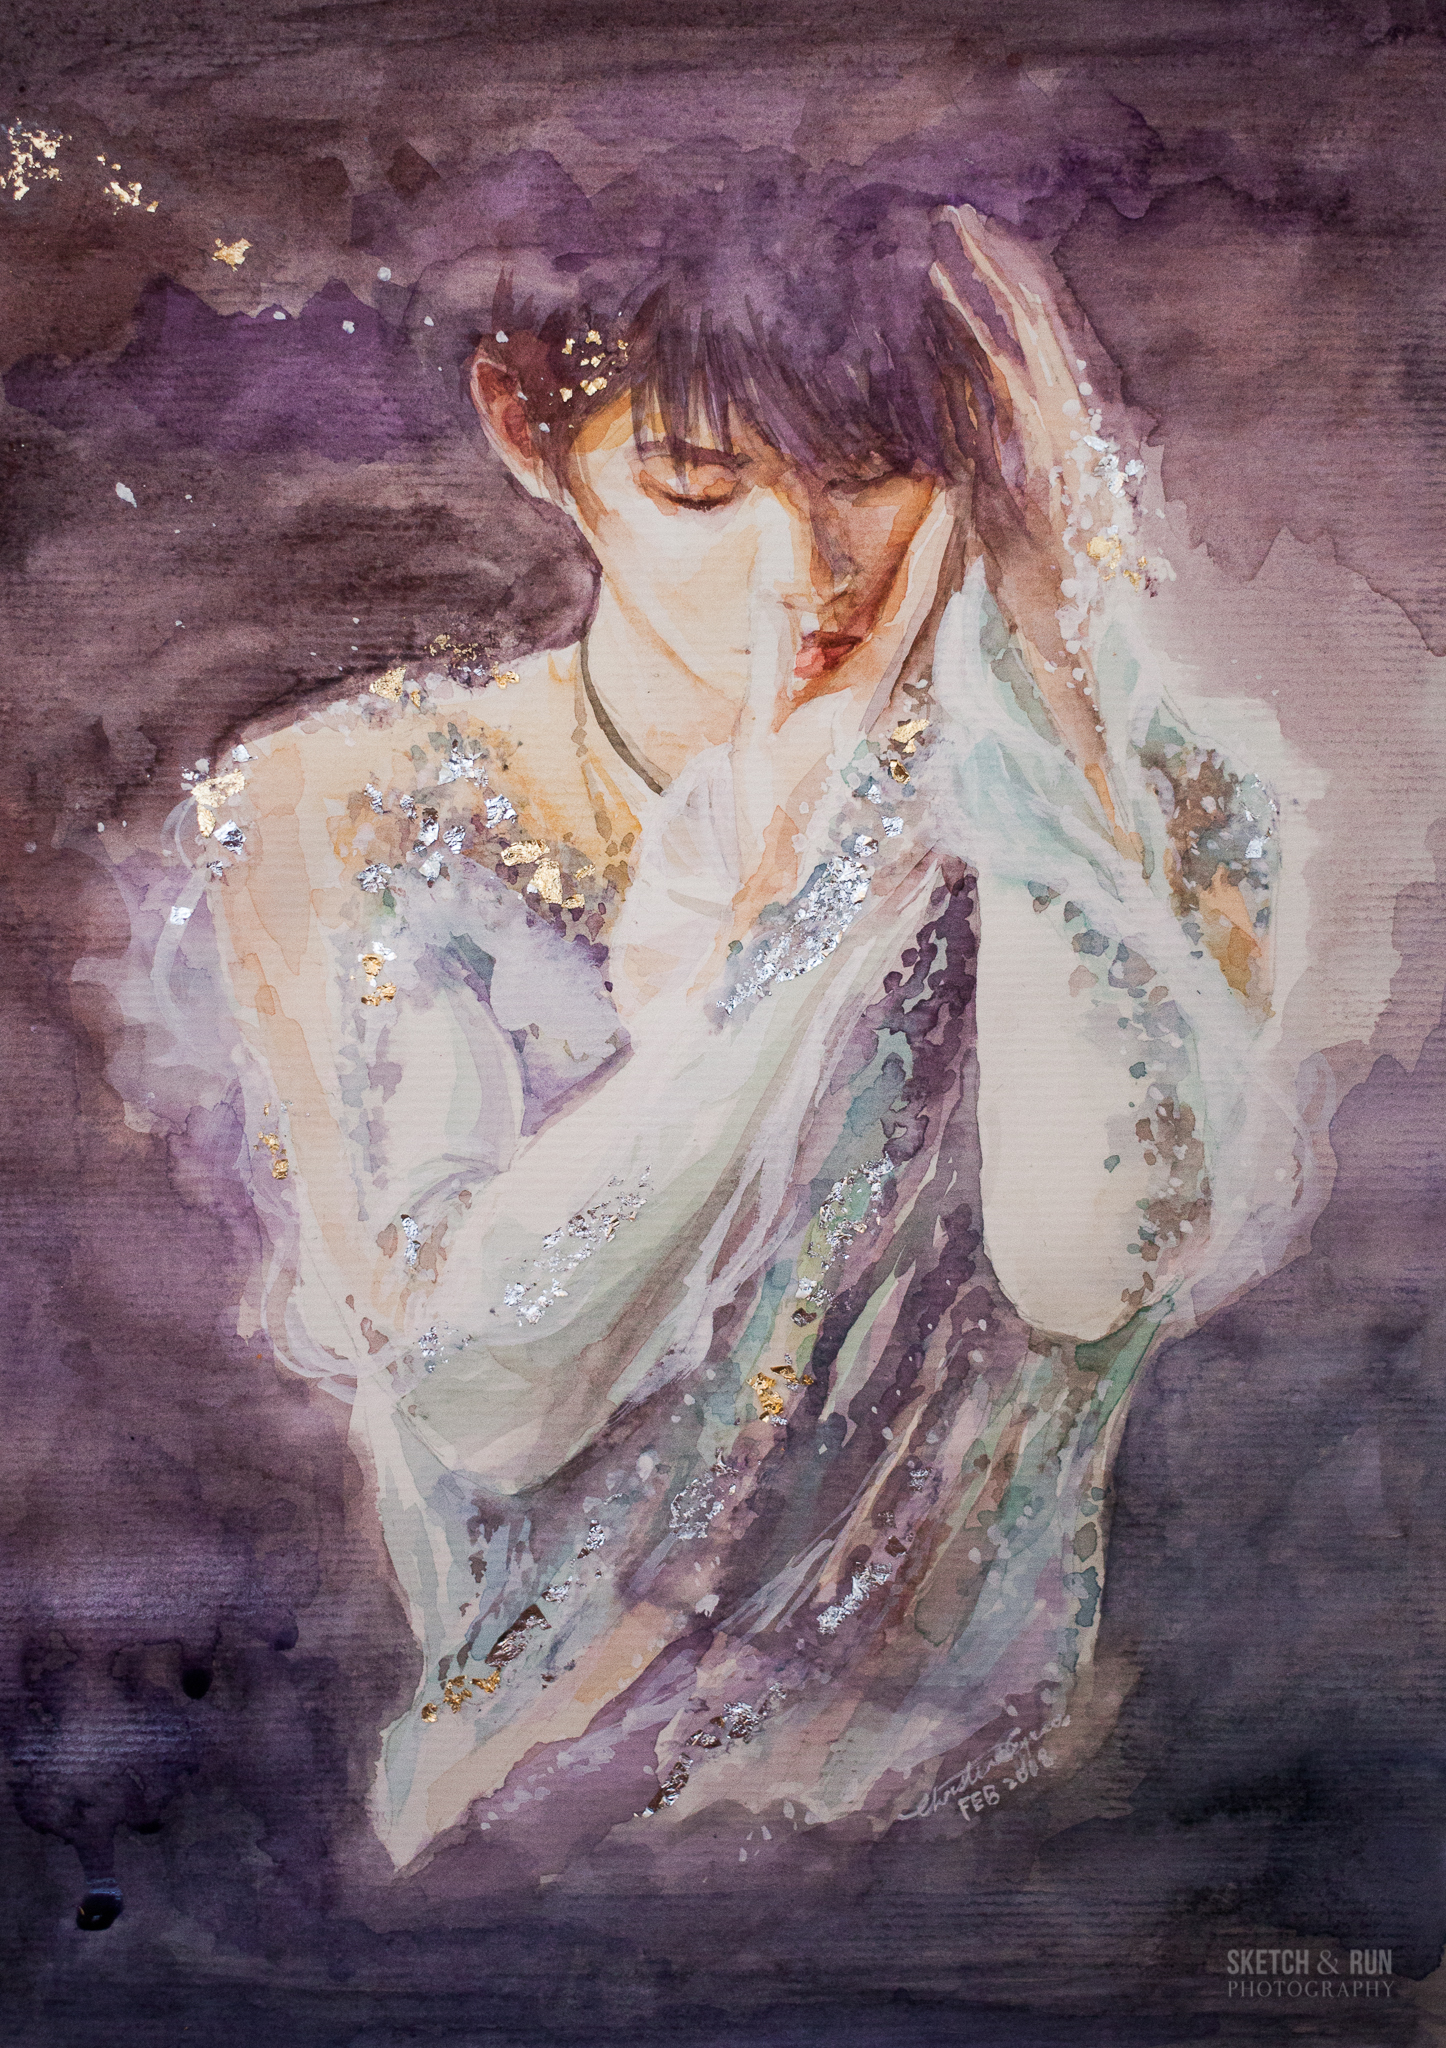 Yuzuru Hanyu , reigning mens singles Olympic Champion, World Champion and world record holder.Suffered injury during the NHK Trophy in November 2017 and will be making his comeback at the Olympics. Painting based on his 2016 World Championship exhibition performance,   Requiem of Heaven and Earth  , dedicated to the victims of the 2011 Japan Earthquake and Tsunami disaster -- Yuzuru was also a victim of the disaster himself. At the time of the skate in Boston, he was  hiding a lisfranc ligament injury and won silver.He said later that he skated the performance not knowing if he would be able to skate competitively again.